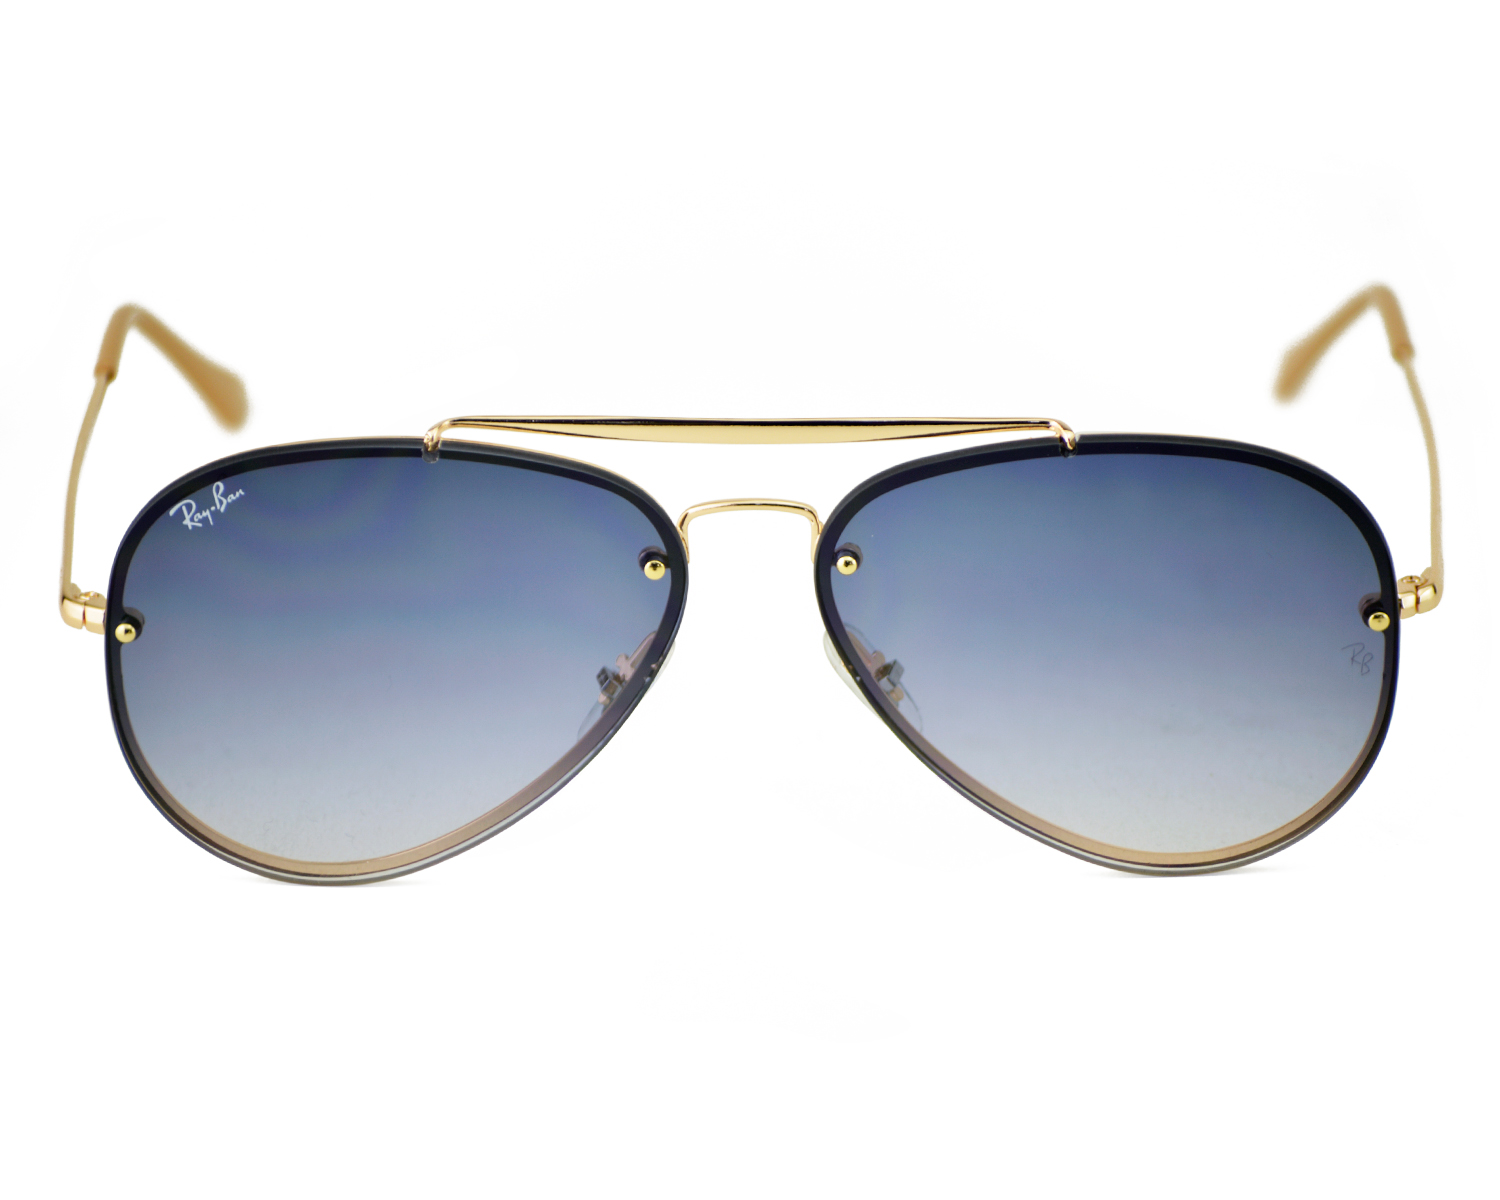 Ray-Ban RB3584N Blaze Aviator 001 19 Gold Frame Light Blue Gradient Lenses  Unisex Sunglasses 58mm 169d750e26